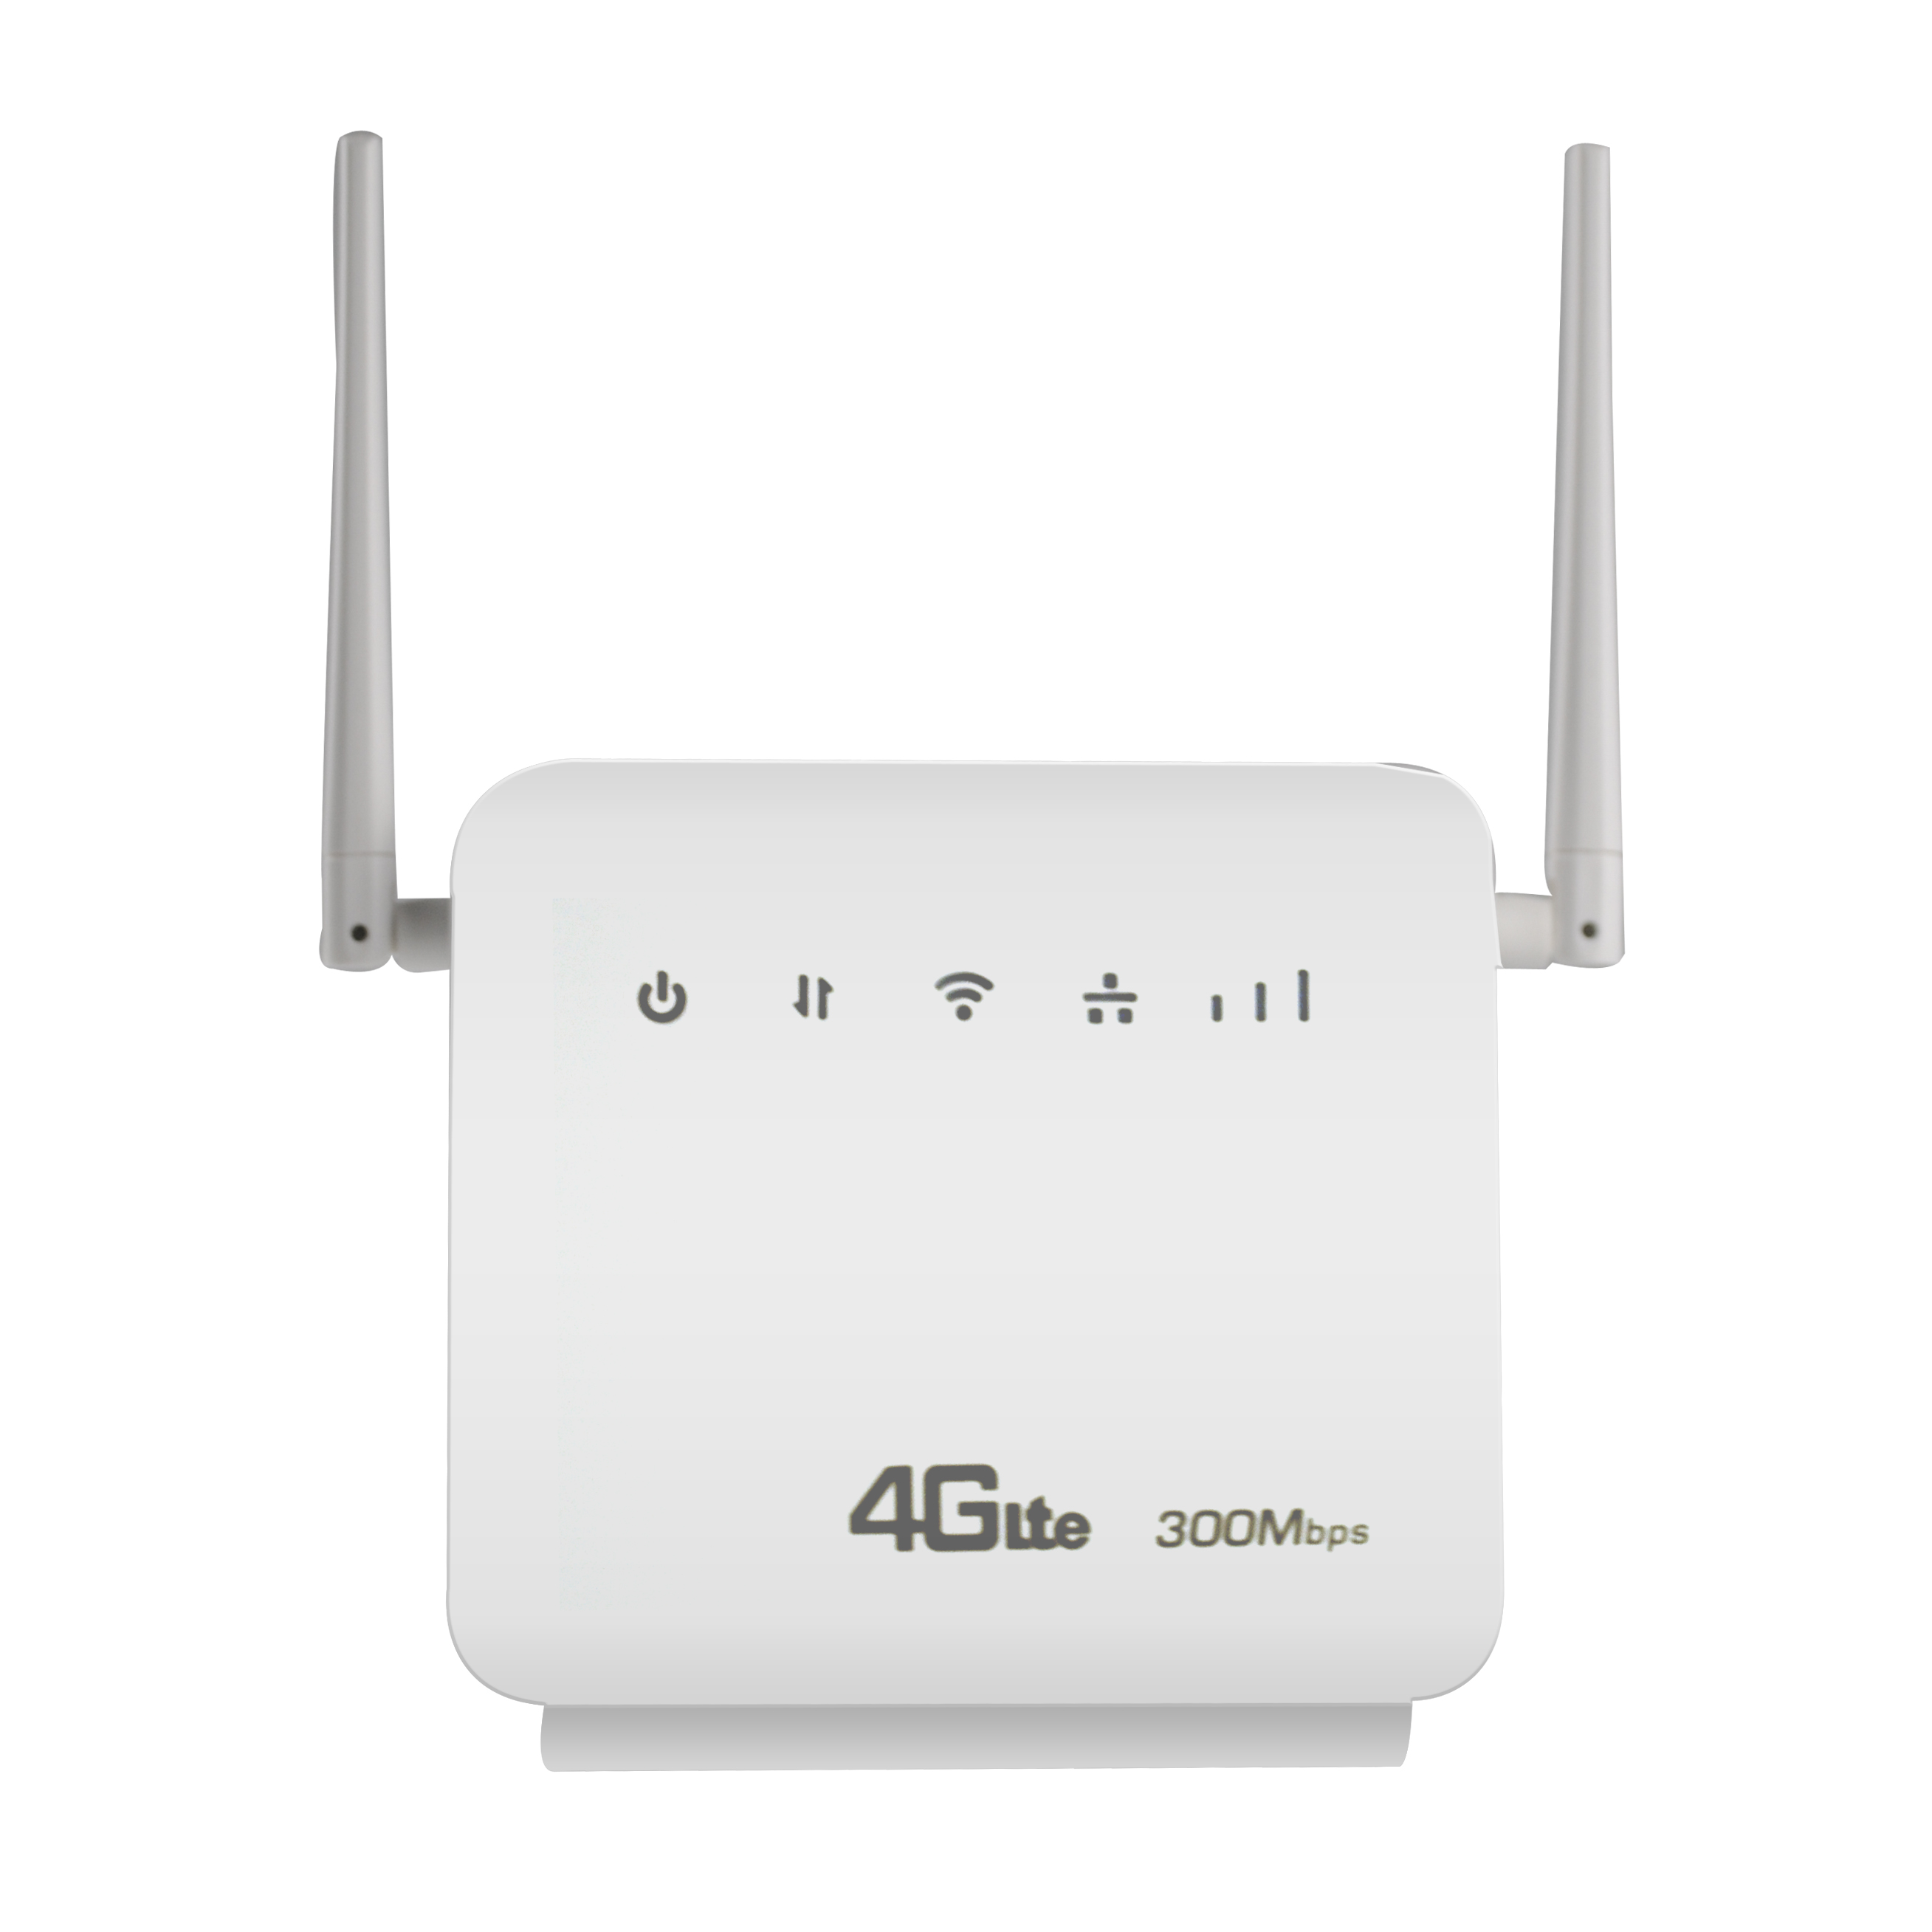 Unlocked 2.4GHz 300Mbps Wifi Routers 4G LTE CPE Mobile Router,Two LAN Port Support SIM Card And Europe/Asia/Middle East/Africa